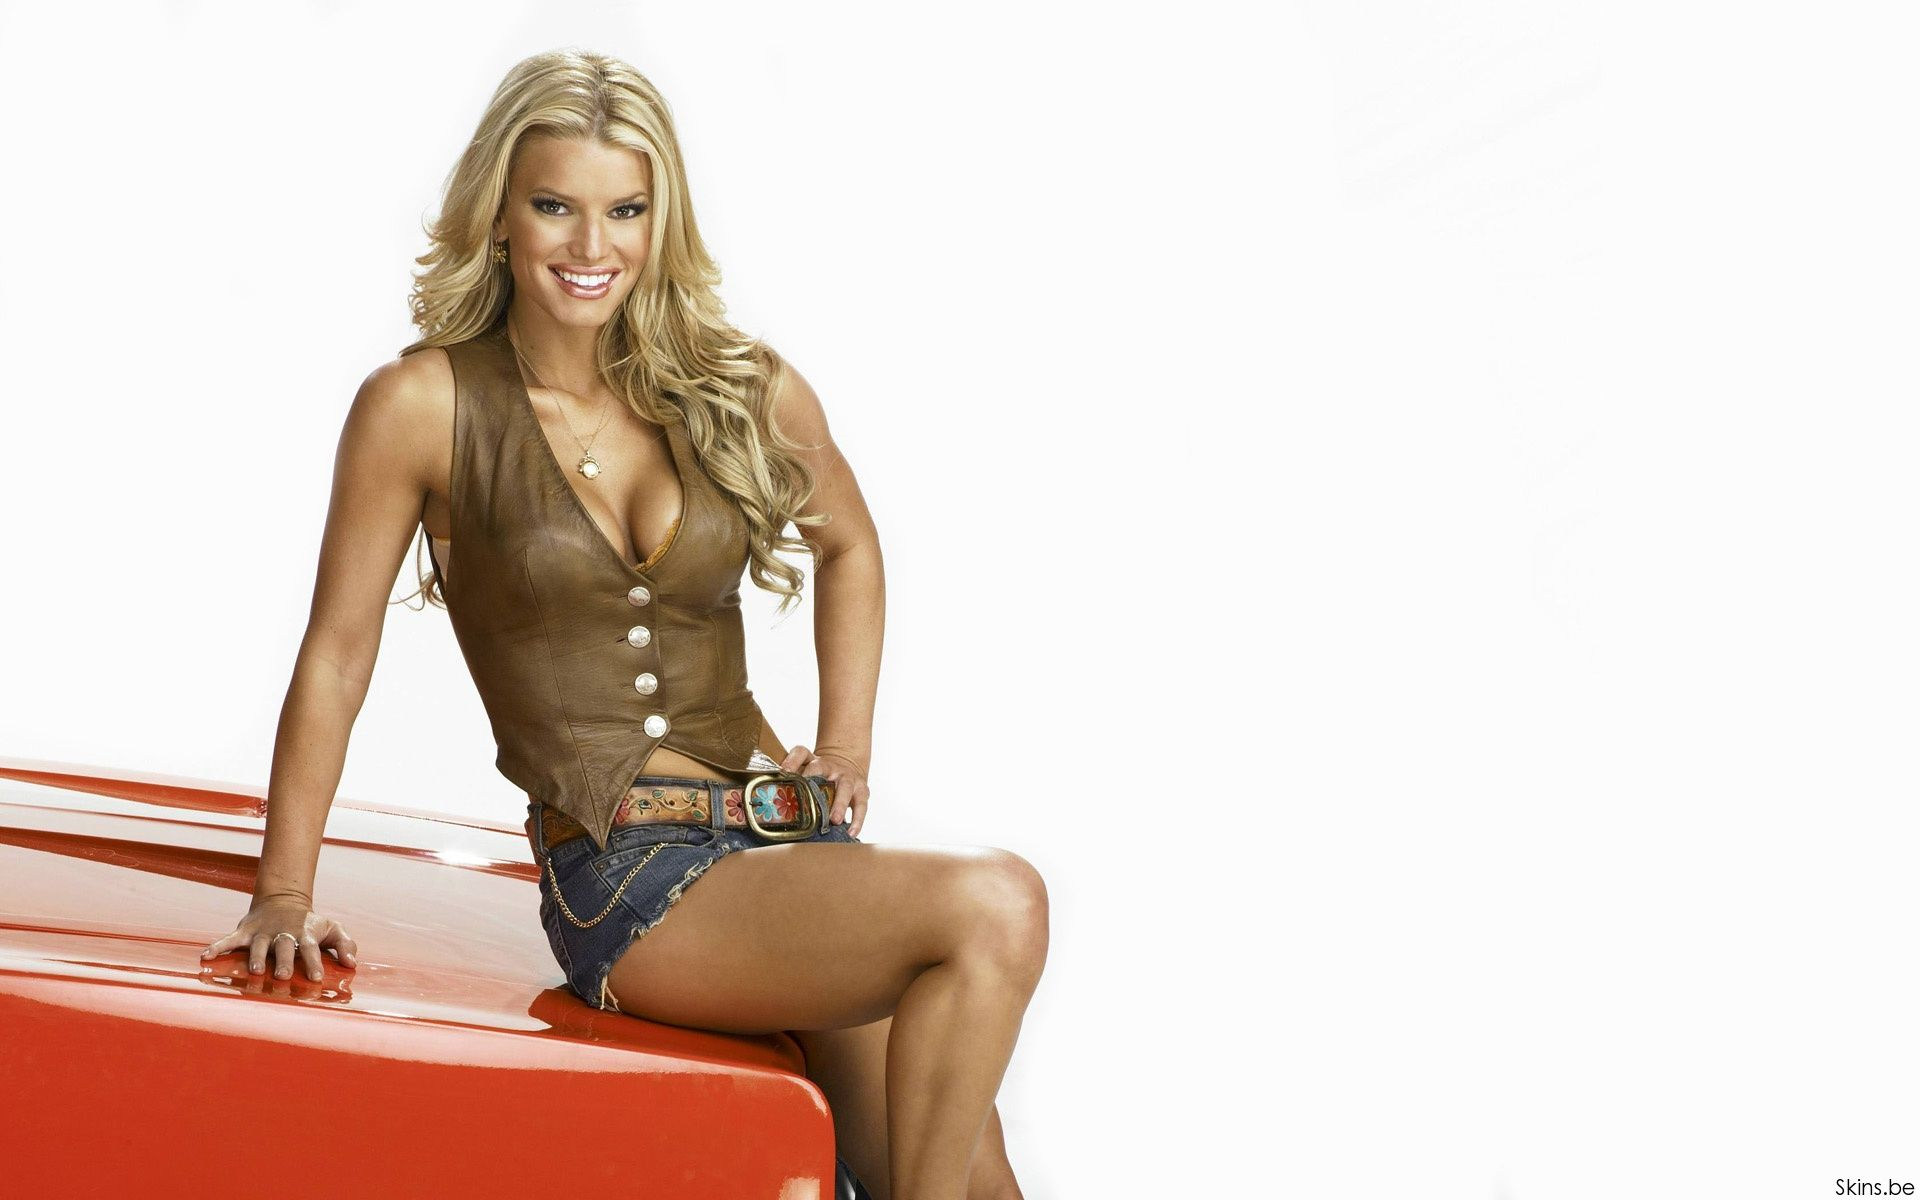 Jessica Simpson Wallpaper Download Jessica Simpson Wallpaper 2013 Jessica Simpson Hot Ashlee Simpson Jessica Simpson